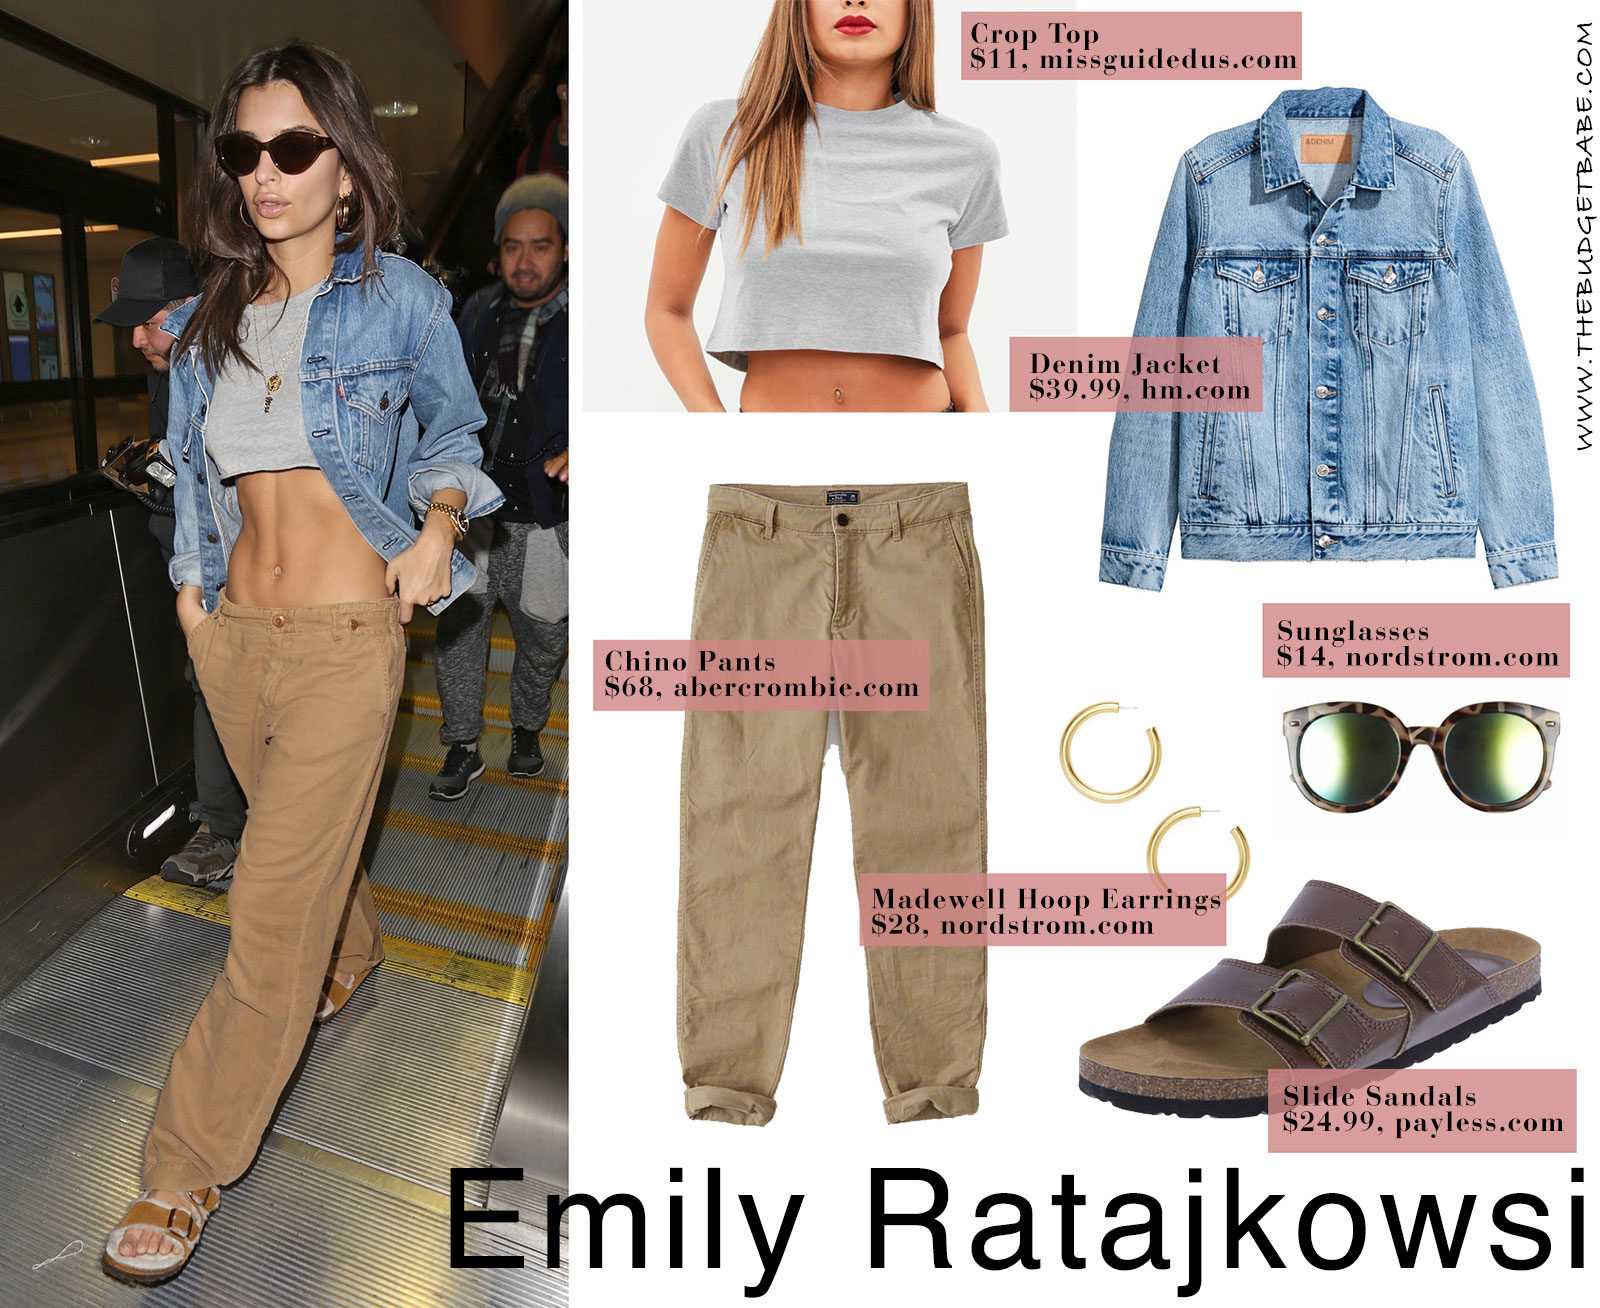 Emily Ratajkowski's cargo pants and crop top look for less